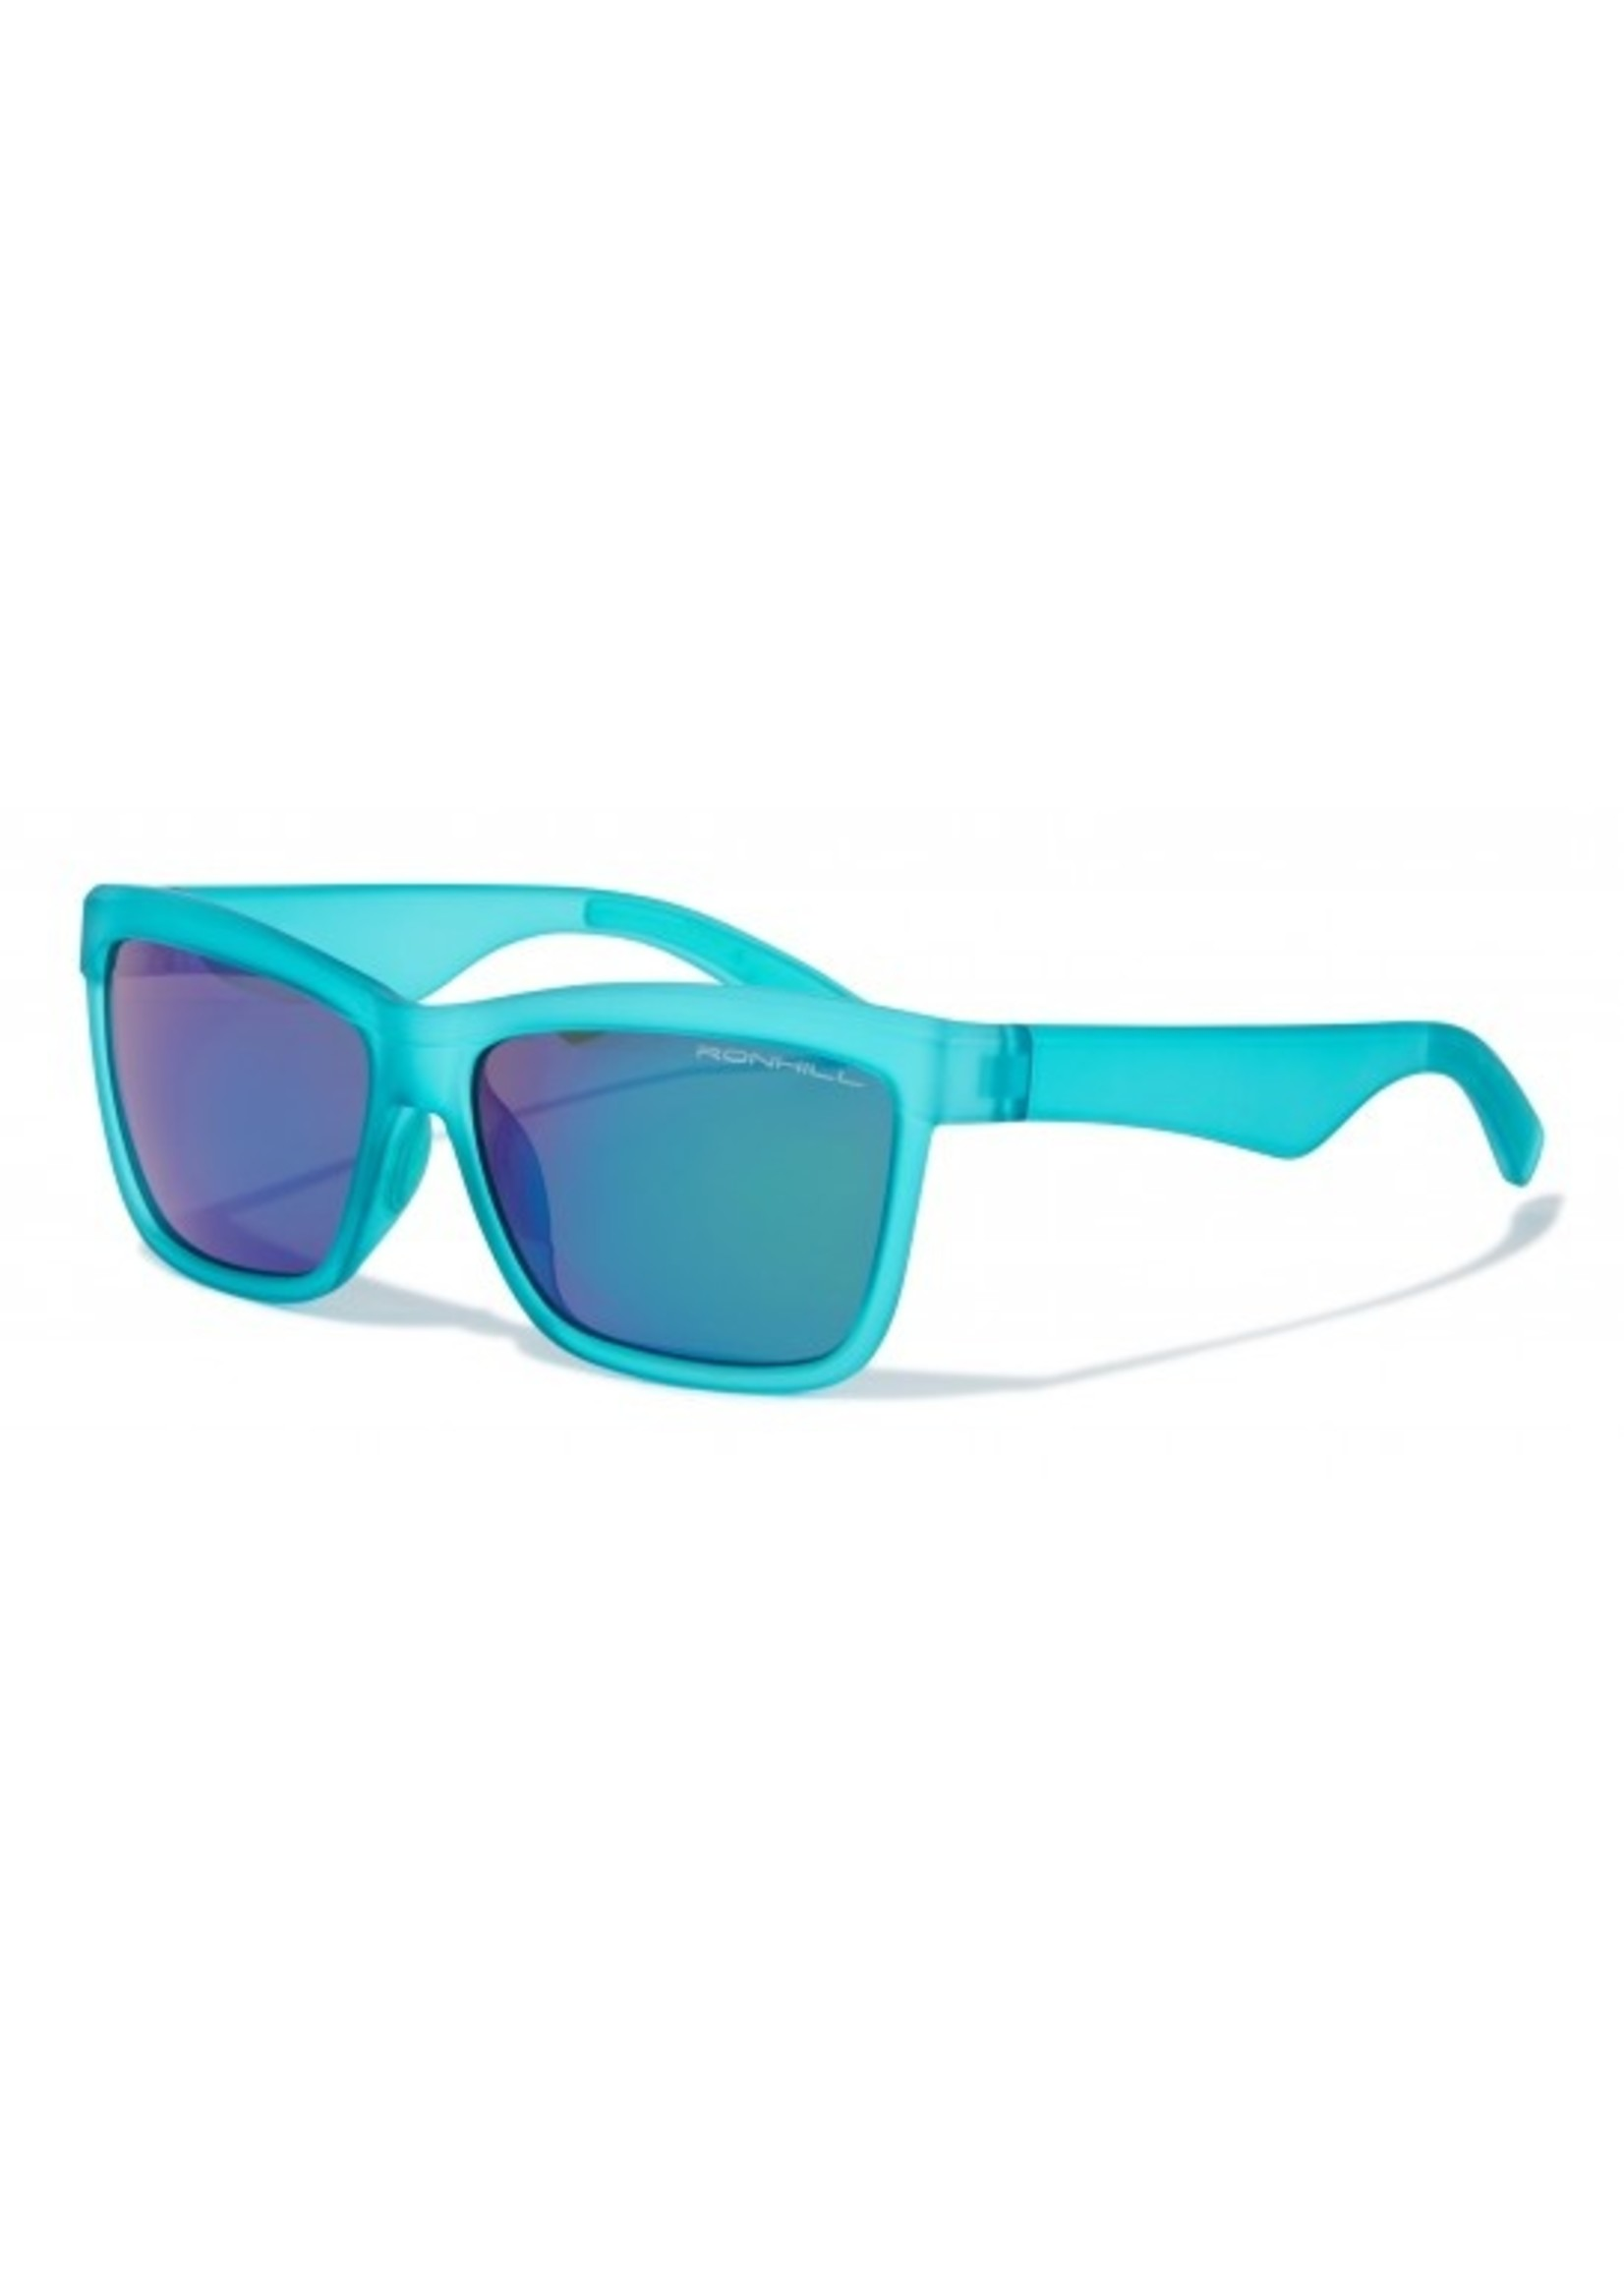 Ronhill Ronhill Mexico City Running Sunglasses (2020)